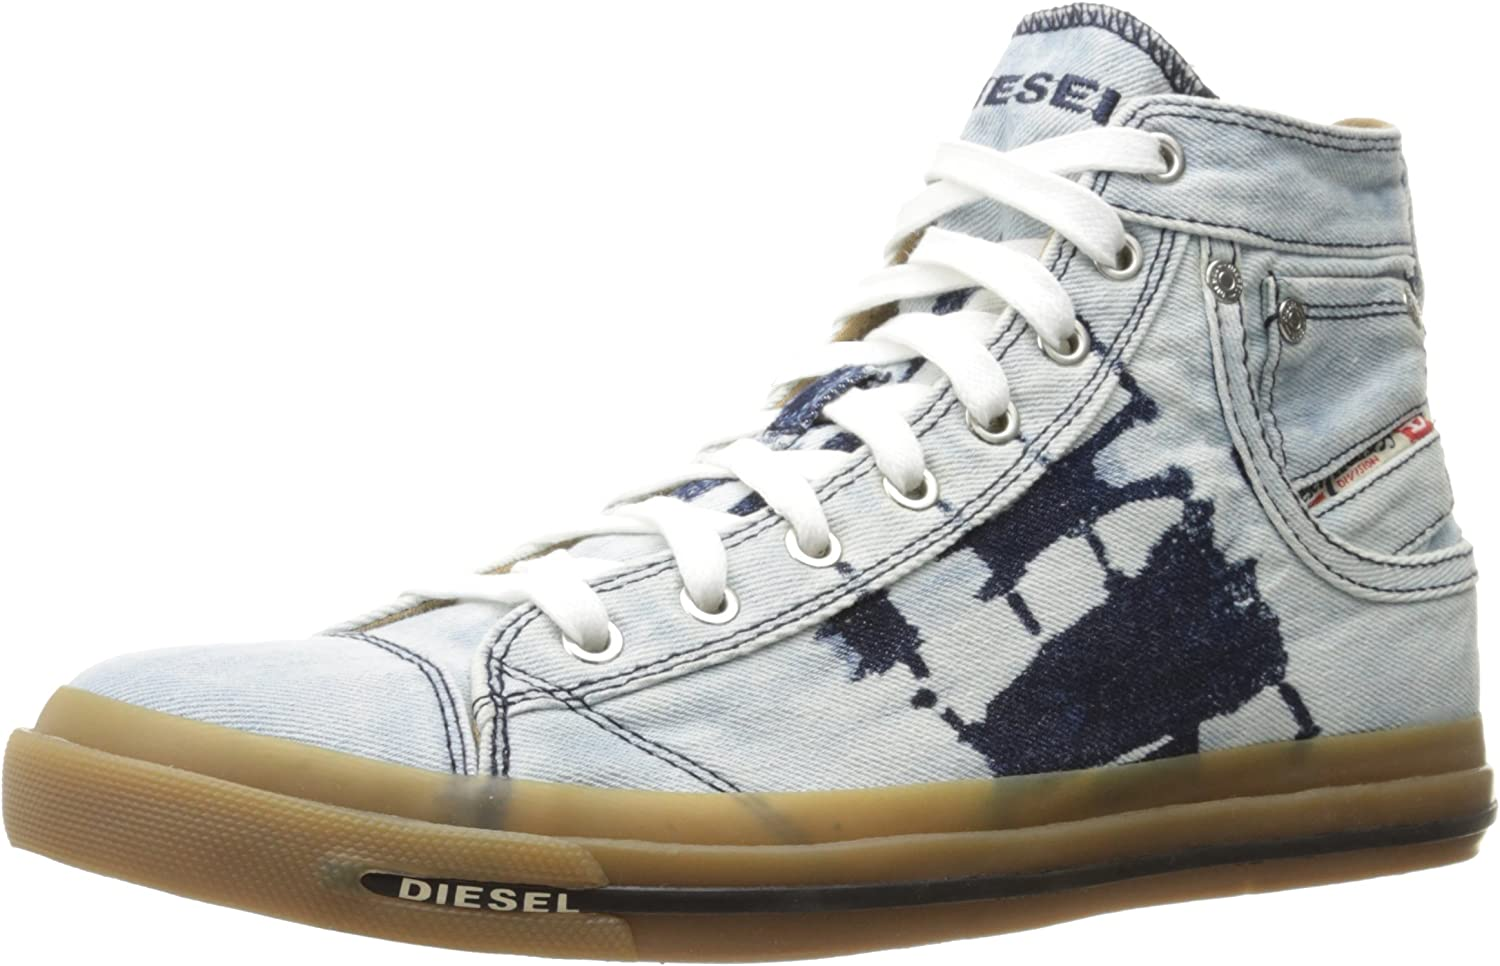 Diesel Men's Magnete Exposure I Fashion Sneaker, Indigo, 12 M US